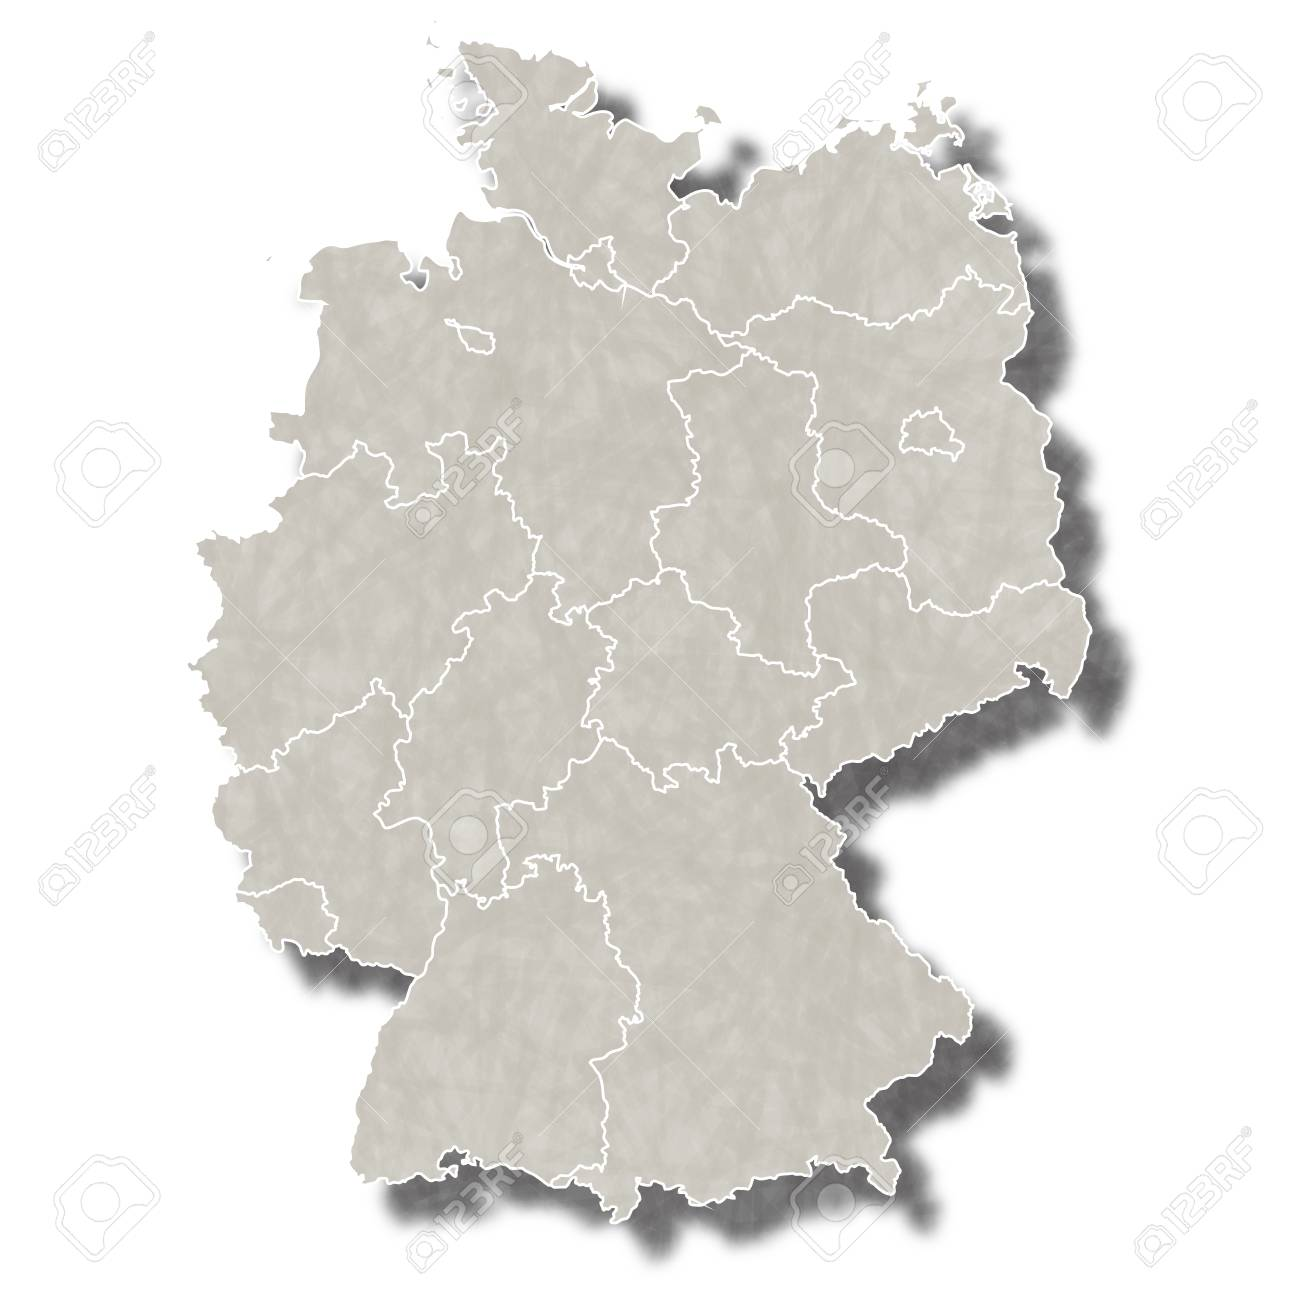 Germany map city icon - 69022366